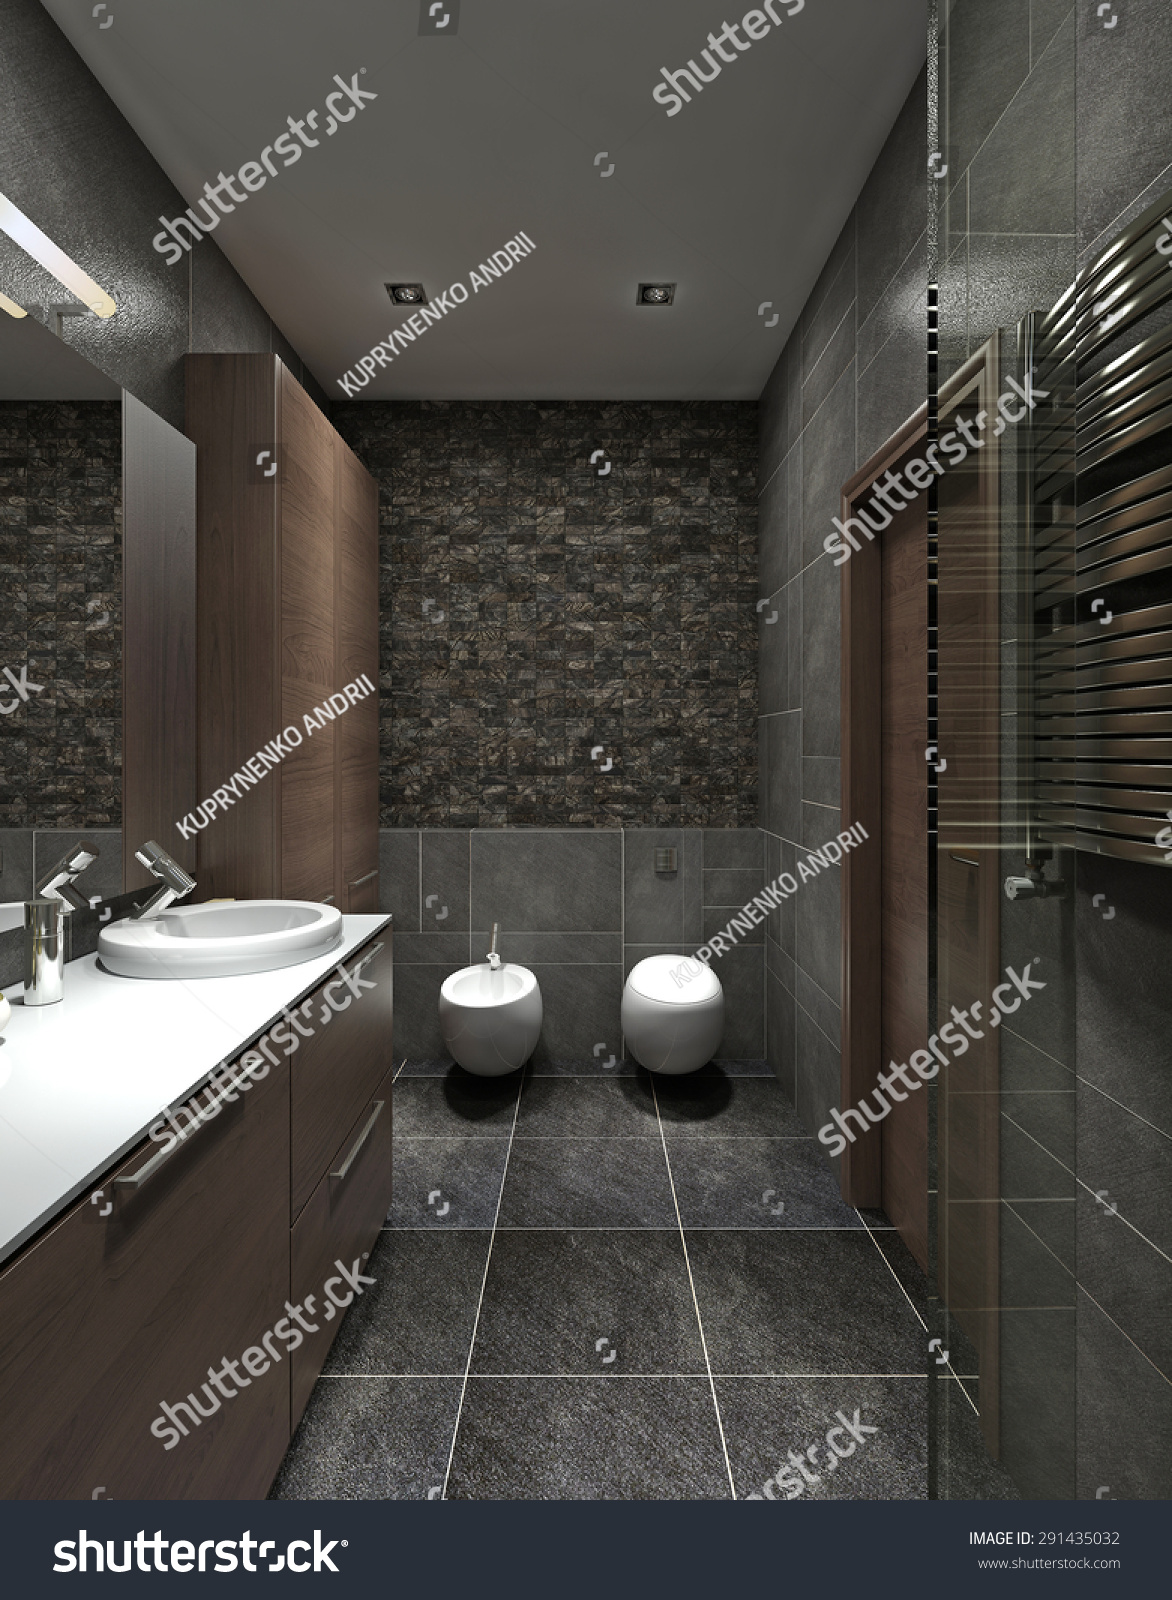 a bathroom in modern style wc bidet and a wardrobe for. Black Bedroom Furniture Sets. Home Design Ideas